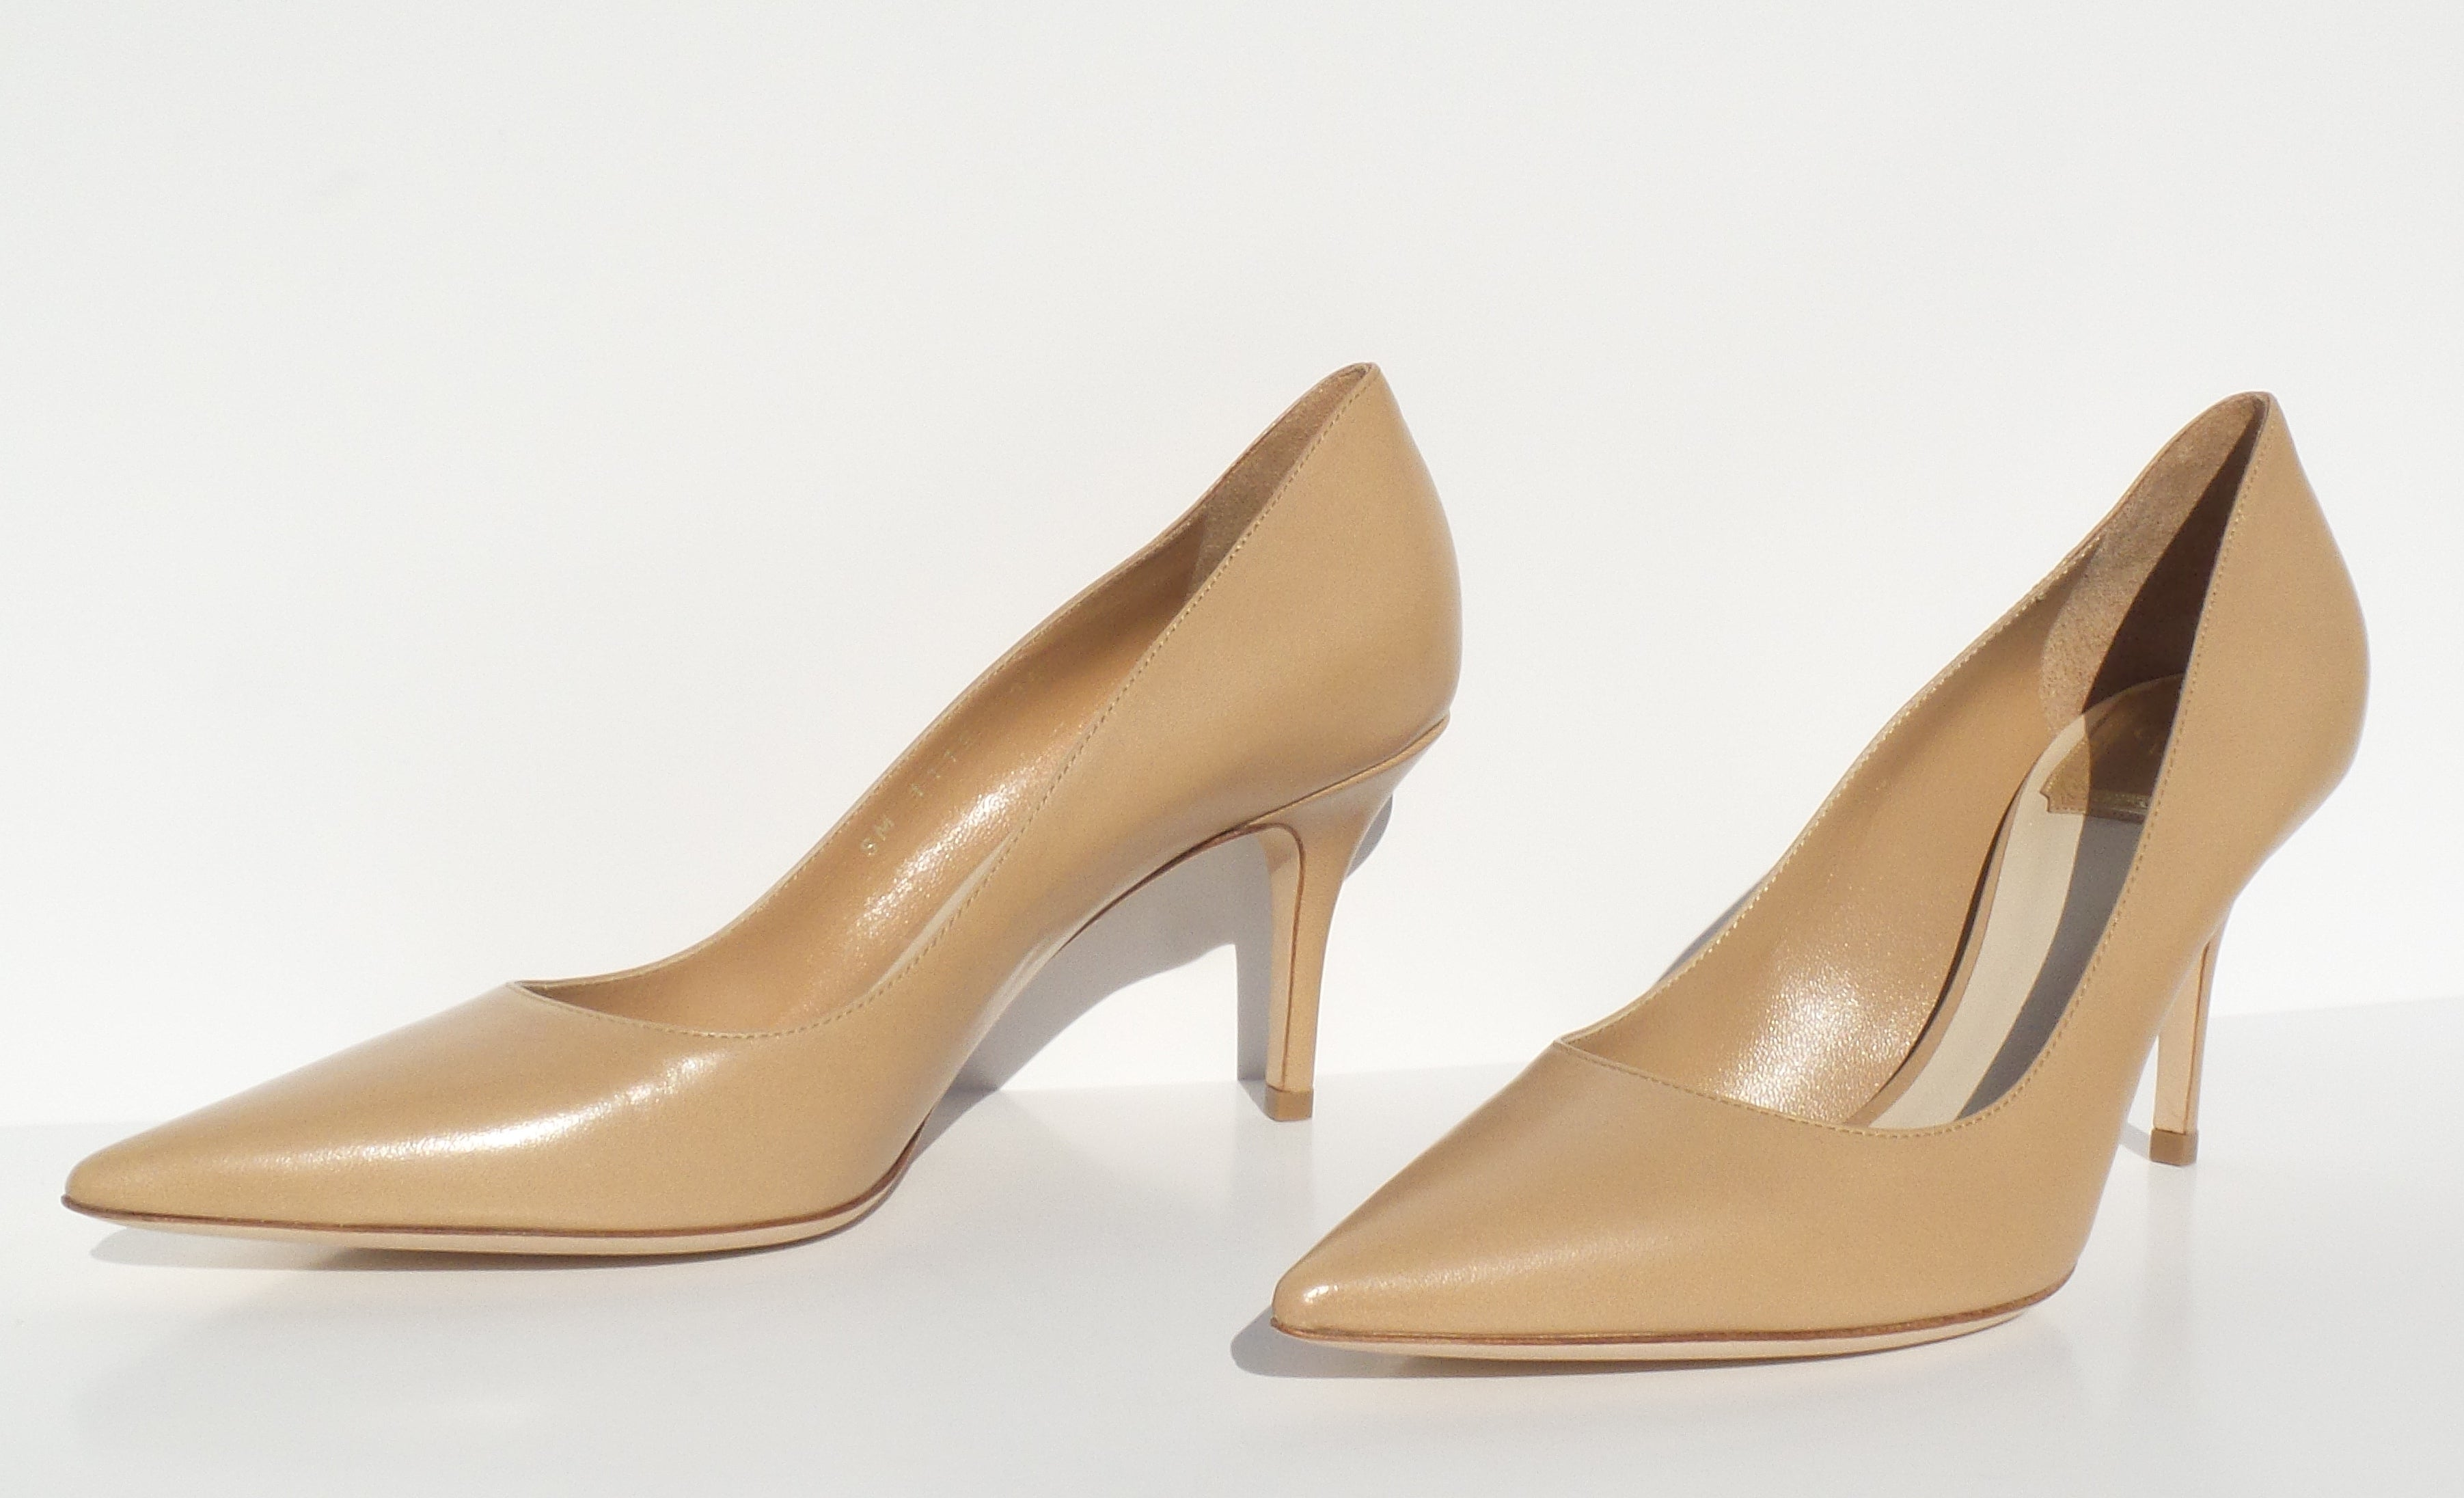 eeb7f22b479  Sold  CHRISTIAN DIOR Cherie 8cm Beige Tan Nude Leather Pointy Toe Cla –  Encore Resale.com